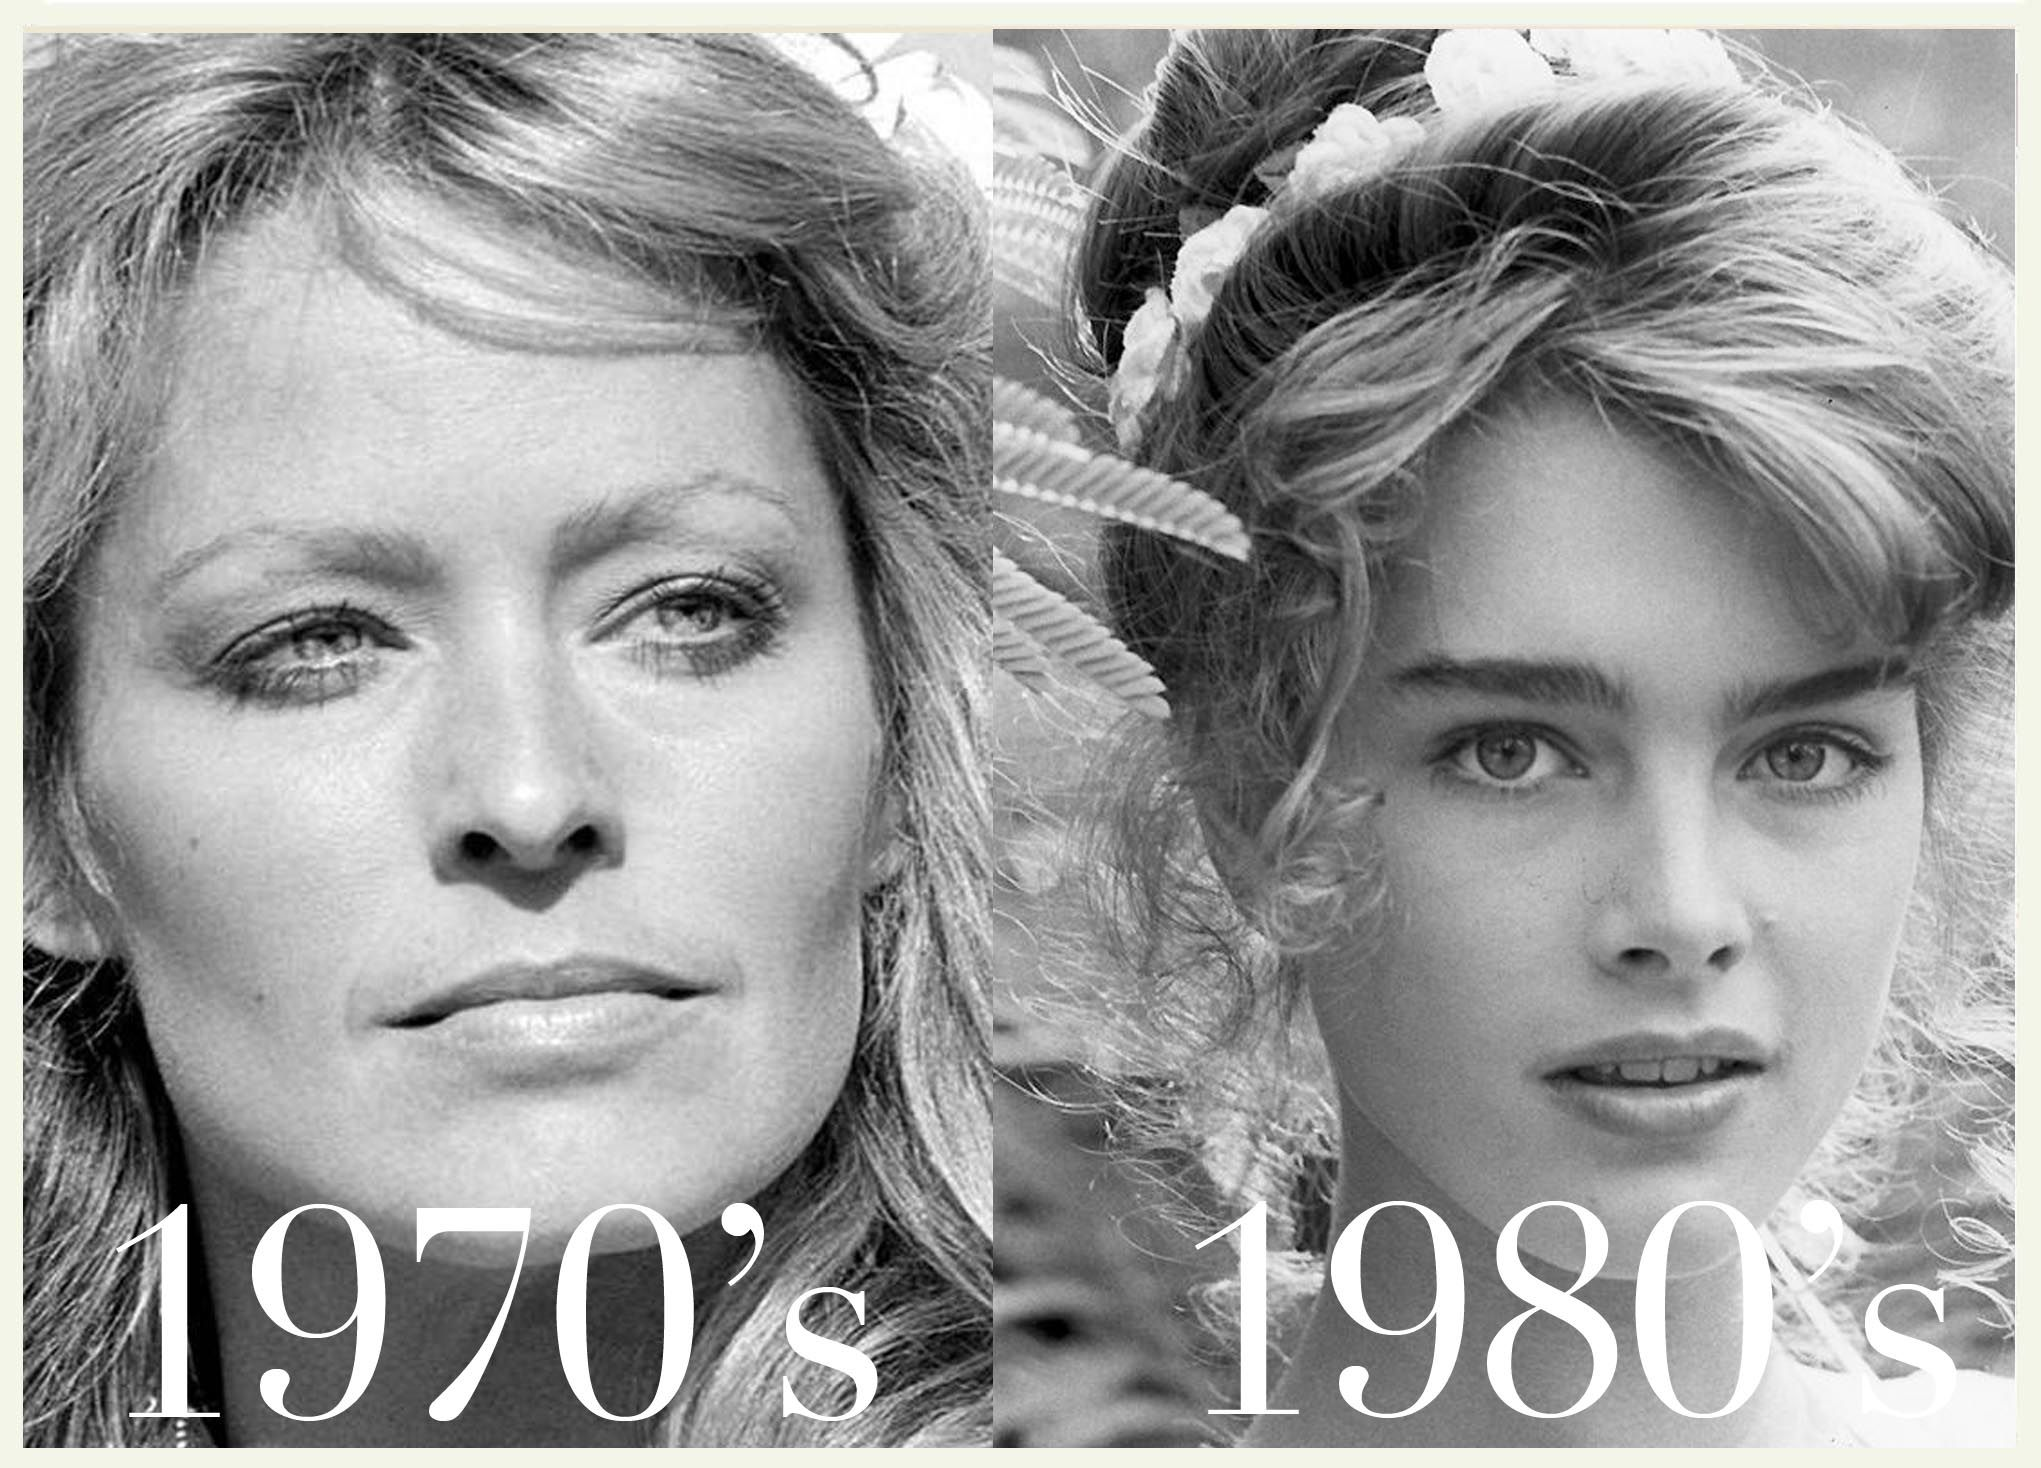 Farrah Fawcett Eyebrows In The 70s And Brook Shields Eyebrows In